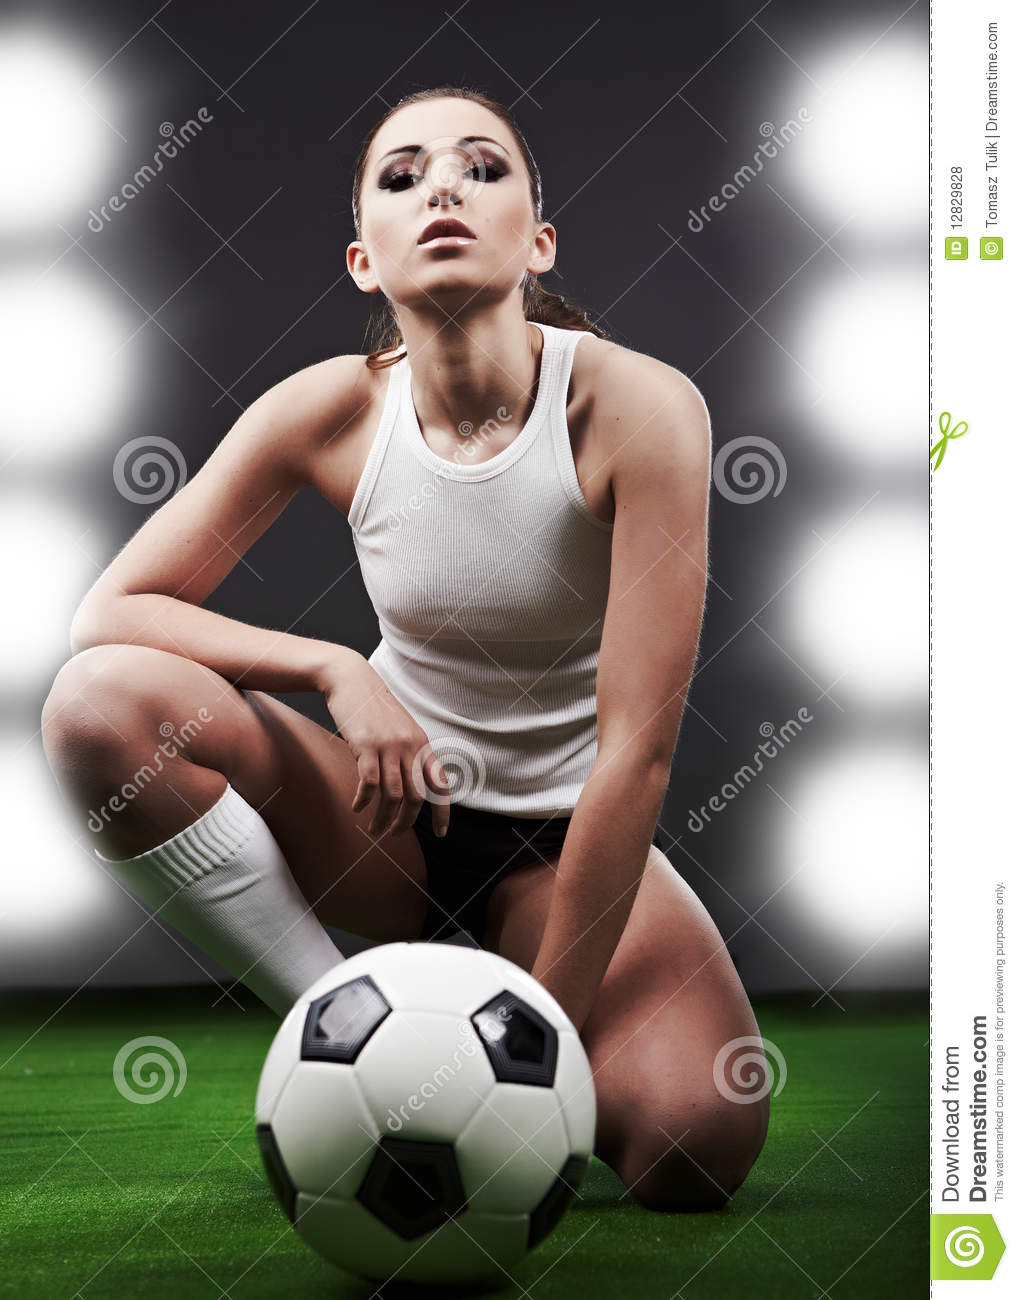 Sexy Soccer Pictures 39